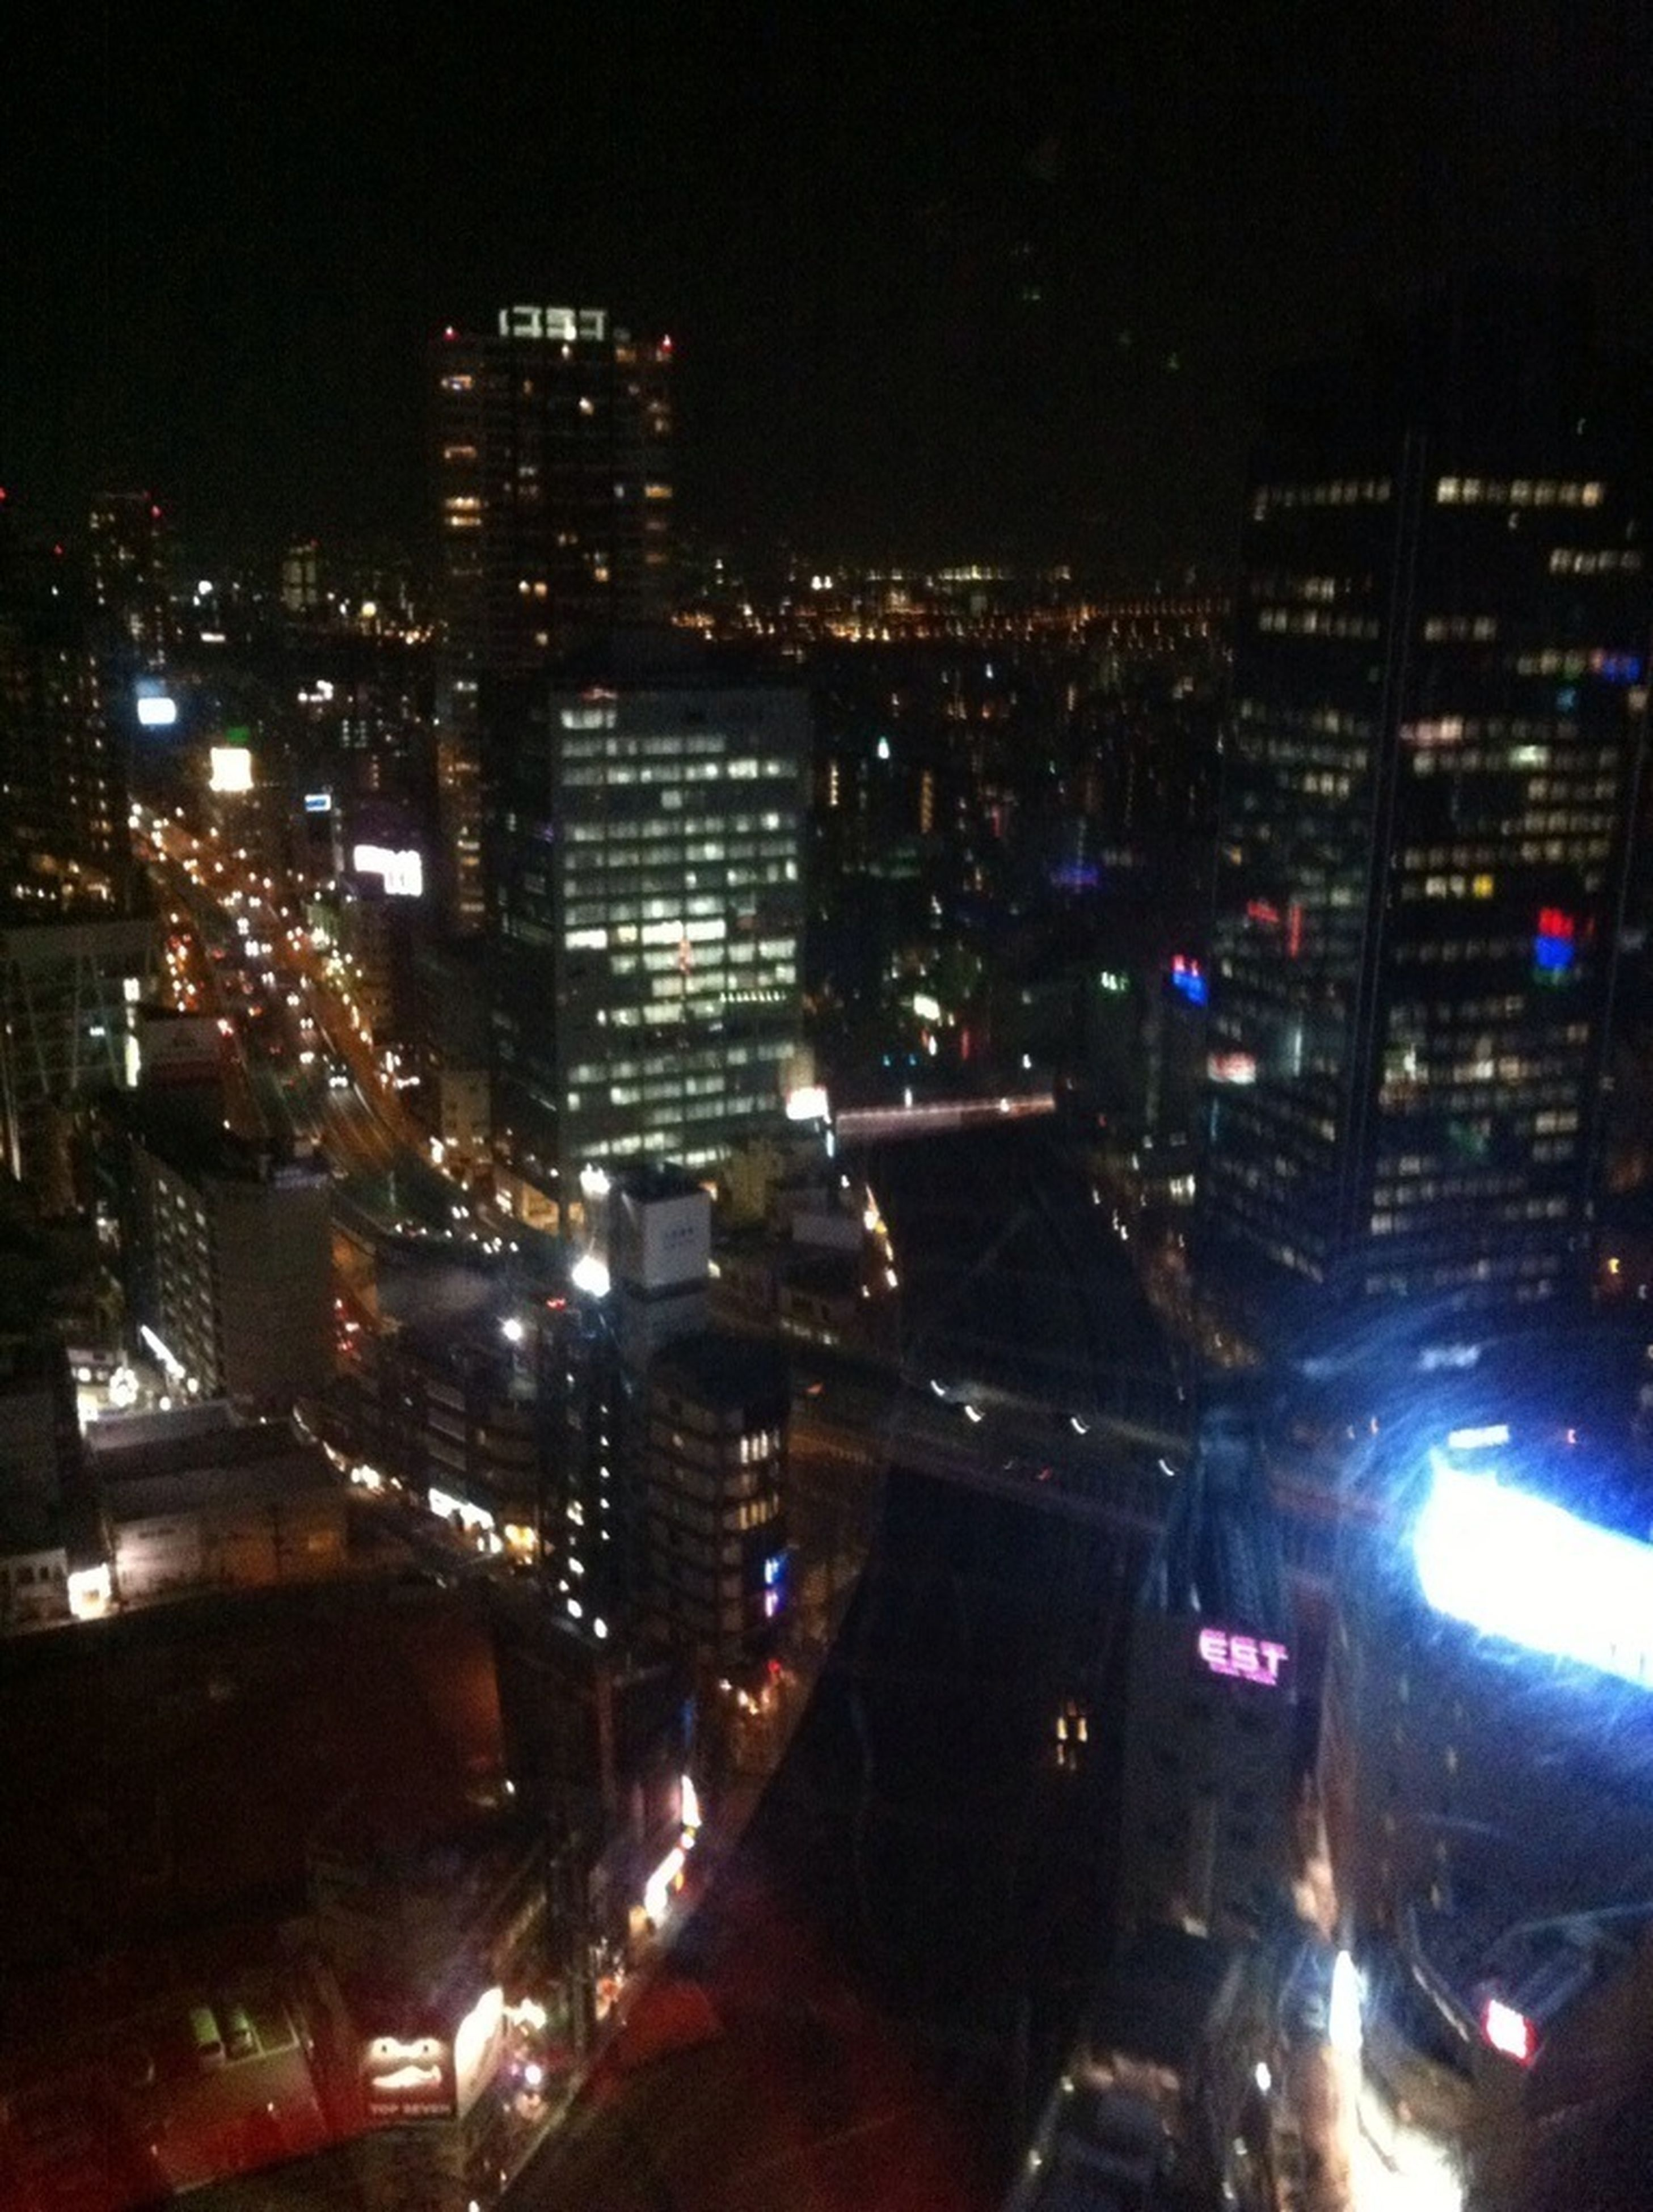 illuminated, night, city, building exterior, architecture, built structure, transportation, car, street, land vehicle, city street, city life, high angle view, cityscape, traffic, road, mode of transport, street light, skyscraper, lighting equipment